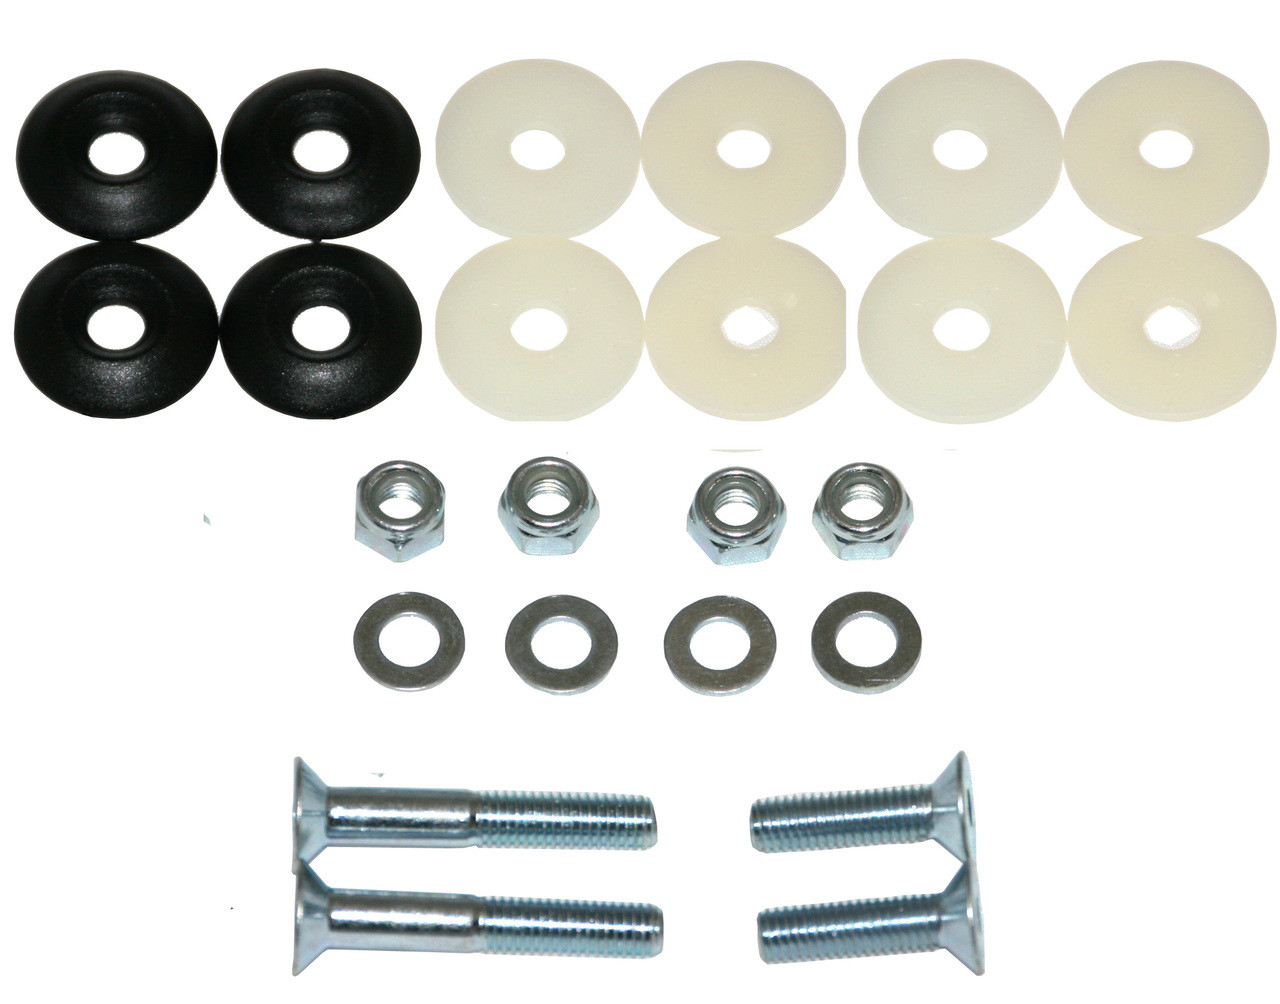 P/N STZ0155: Seat Mounting Kit, Upgraded